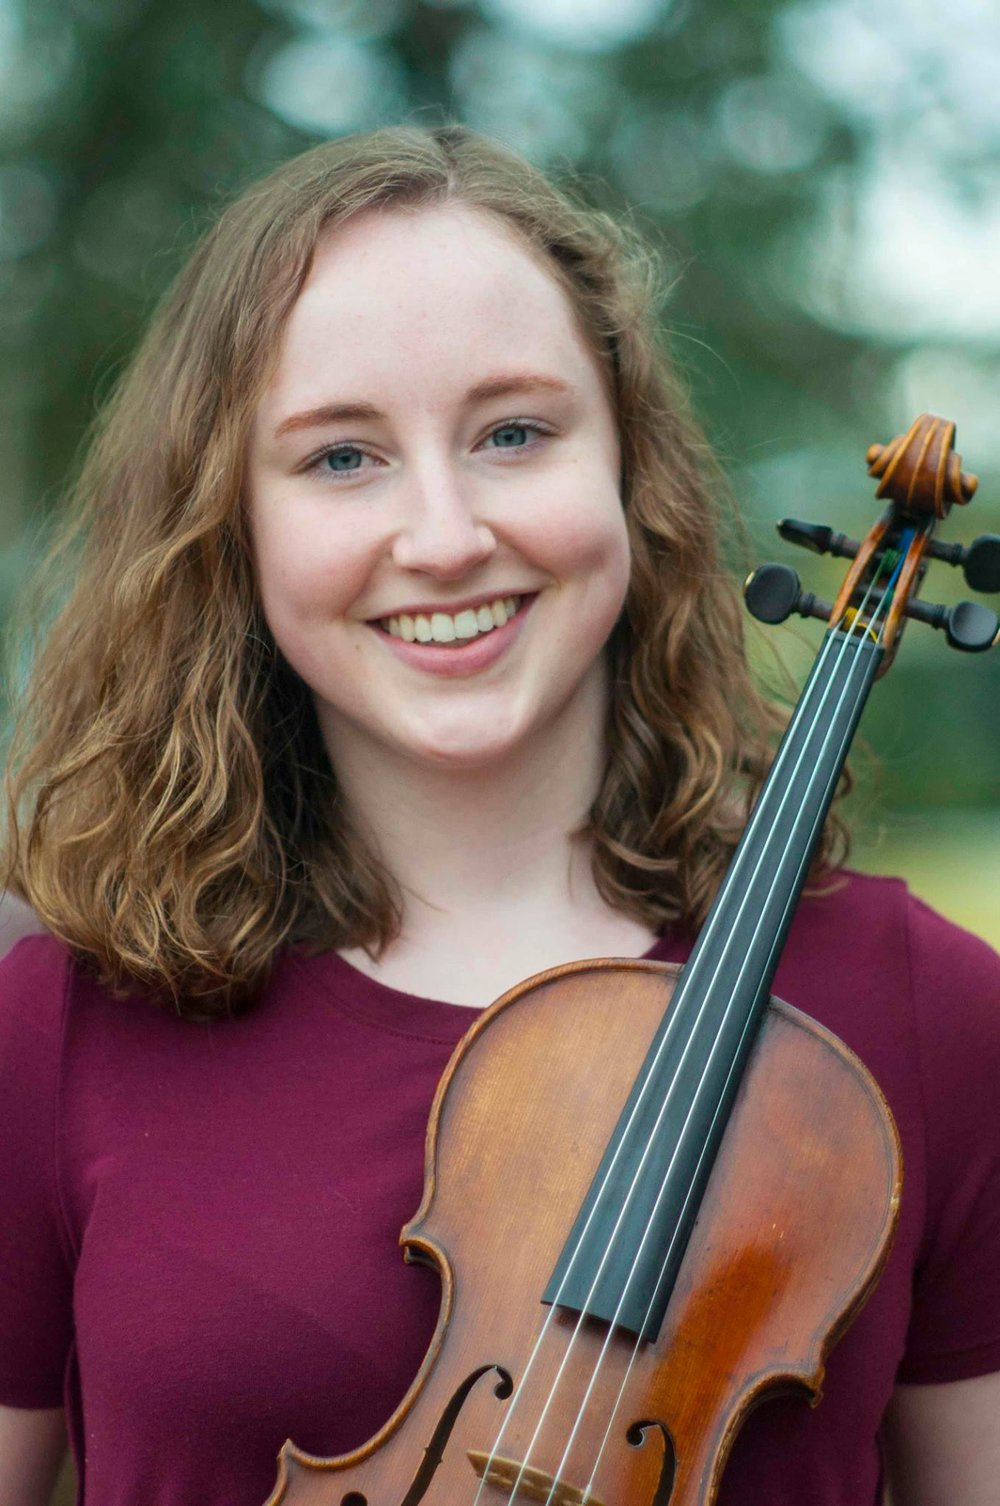 Hannie McGarity, Violin - Winner - St. Olaf College, Northfield, MN